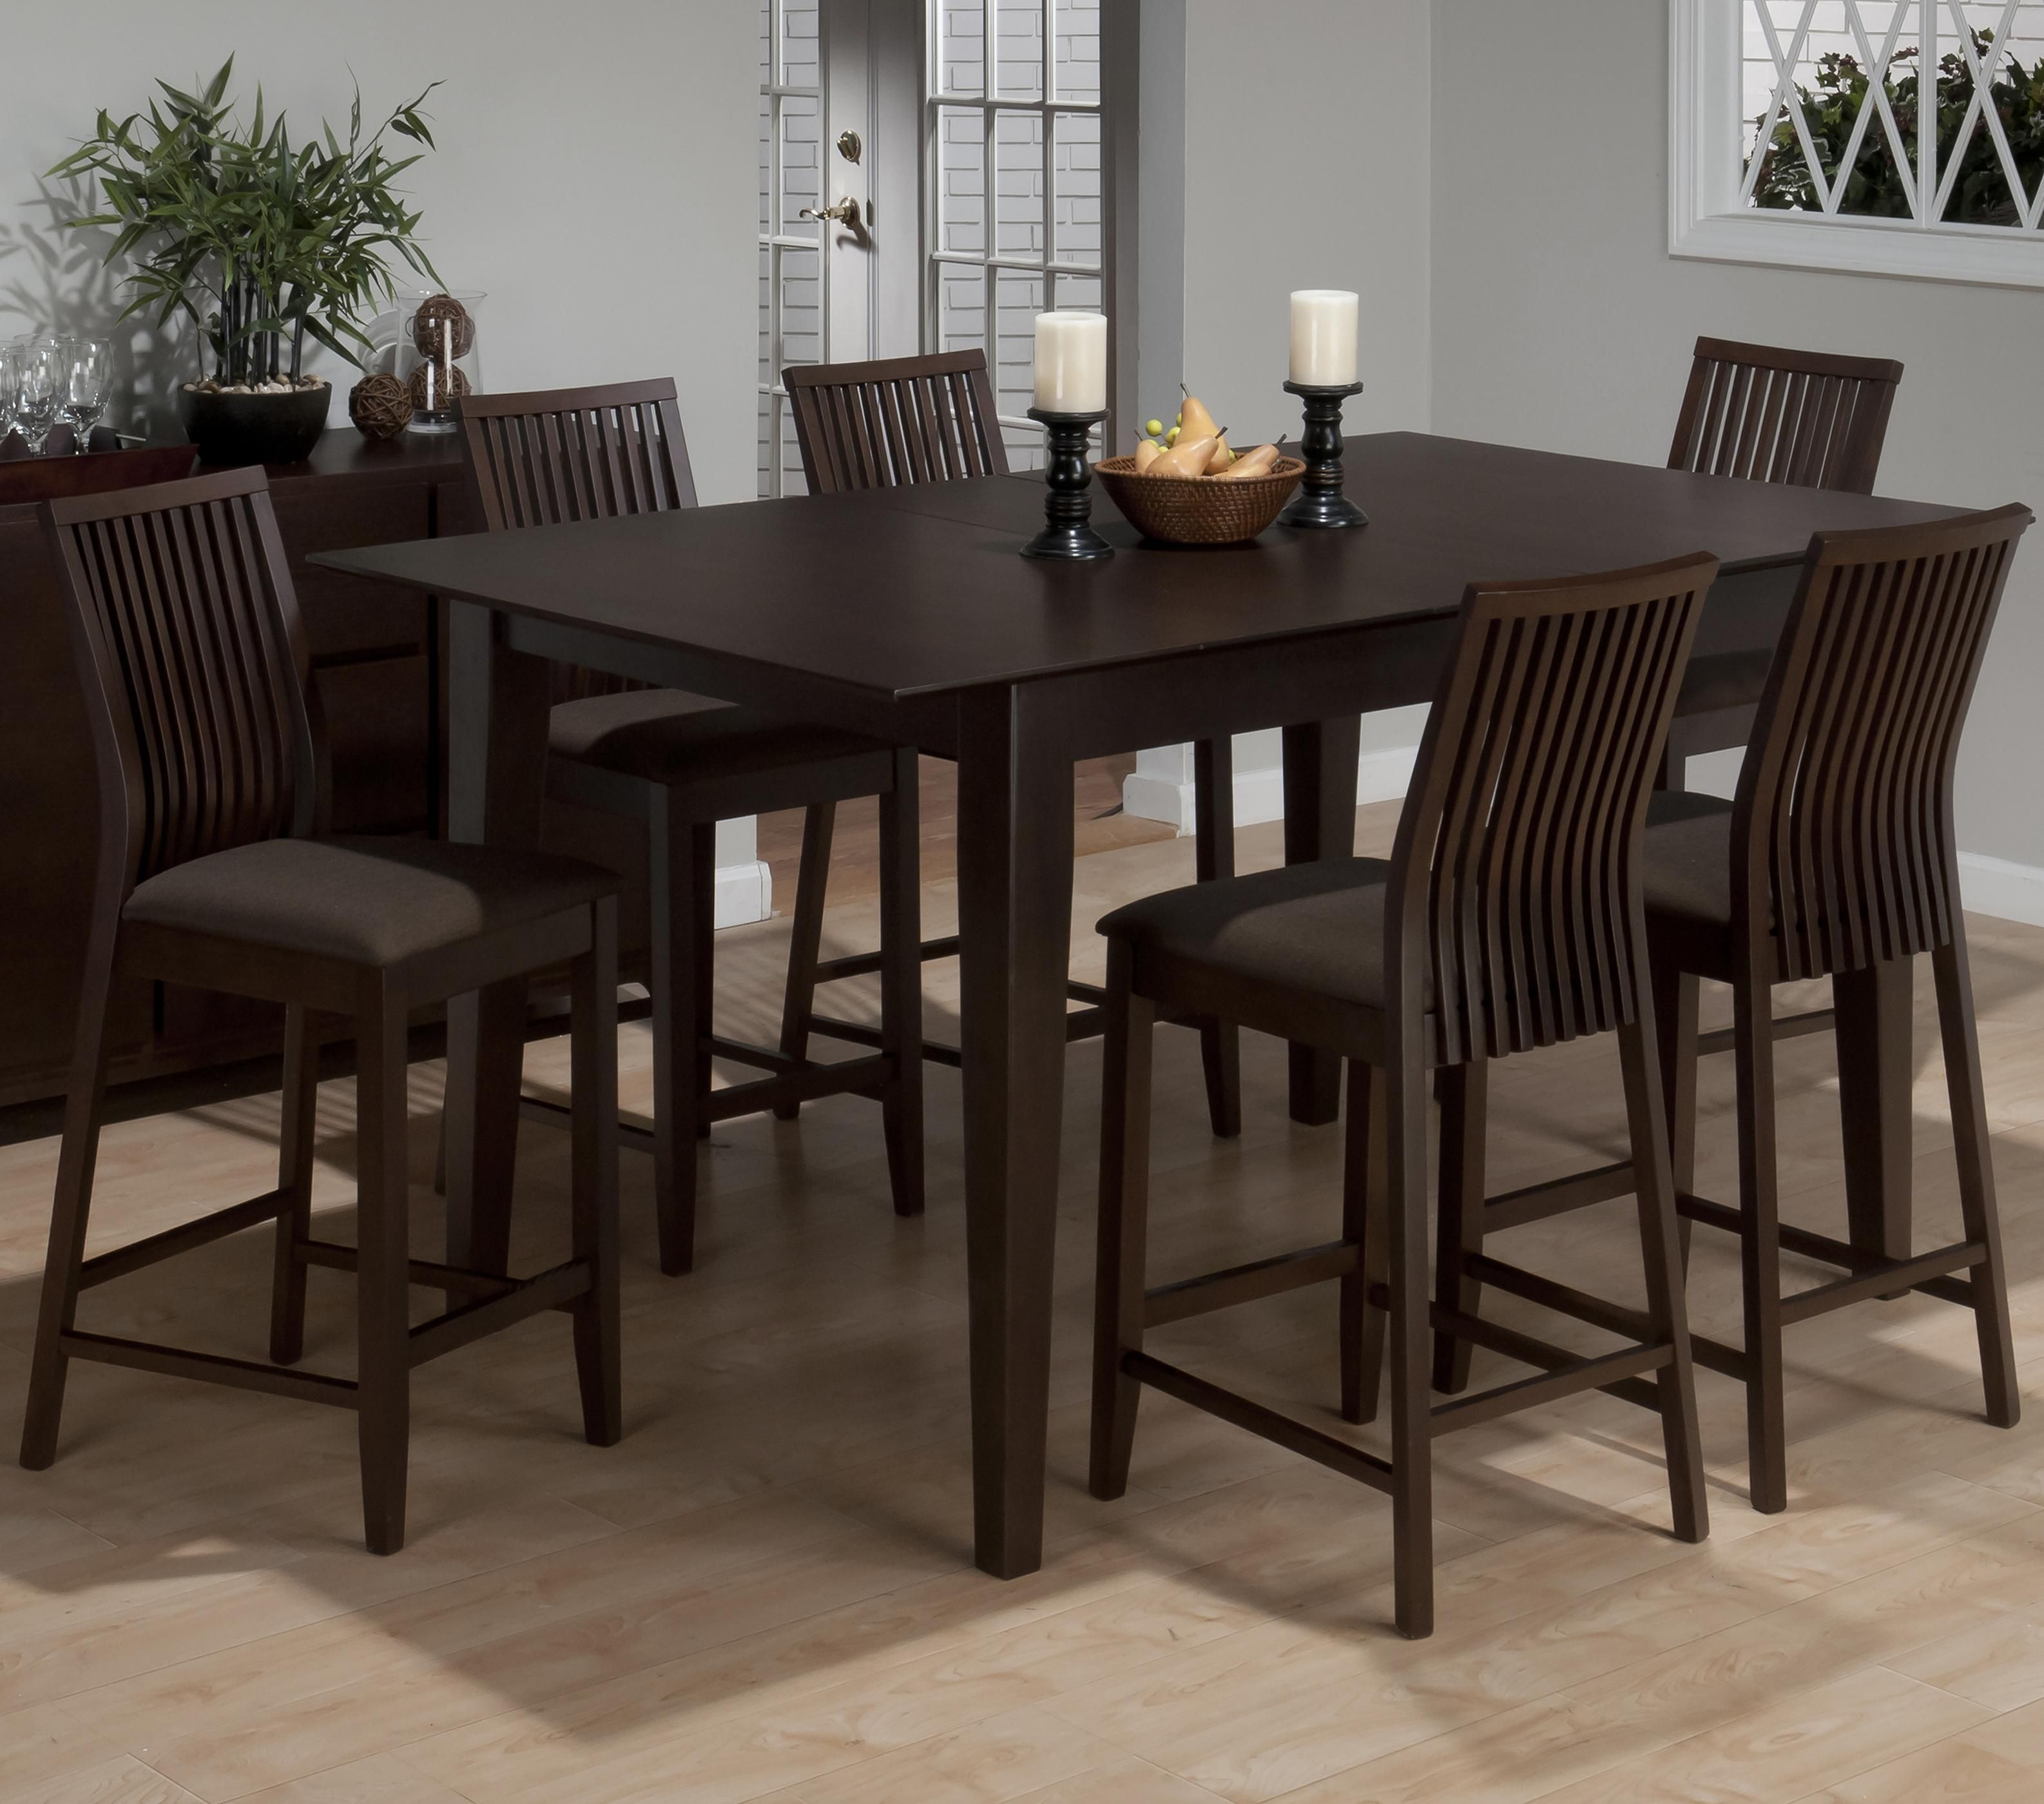 Error Royal Furniture Memphis Jackson Tn Southaven Ms And Birmingham Alabama Dining Table In Kitchen Rectangle Dining Table Rectangular Dining Table